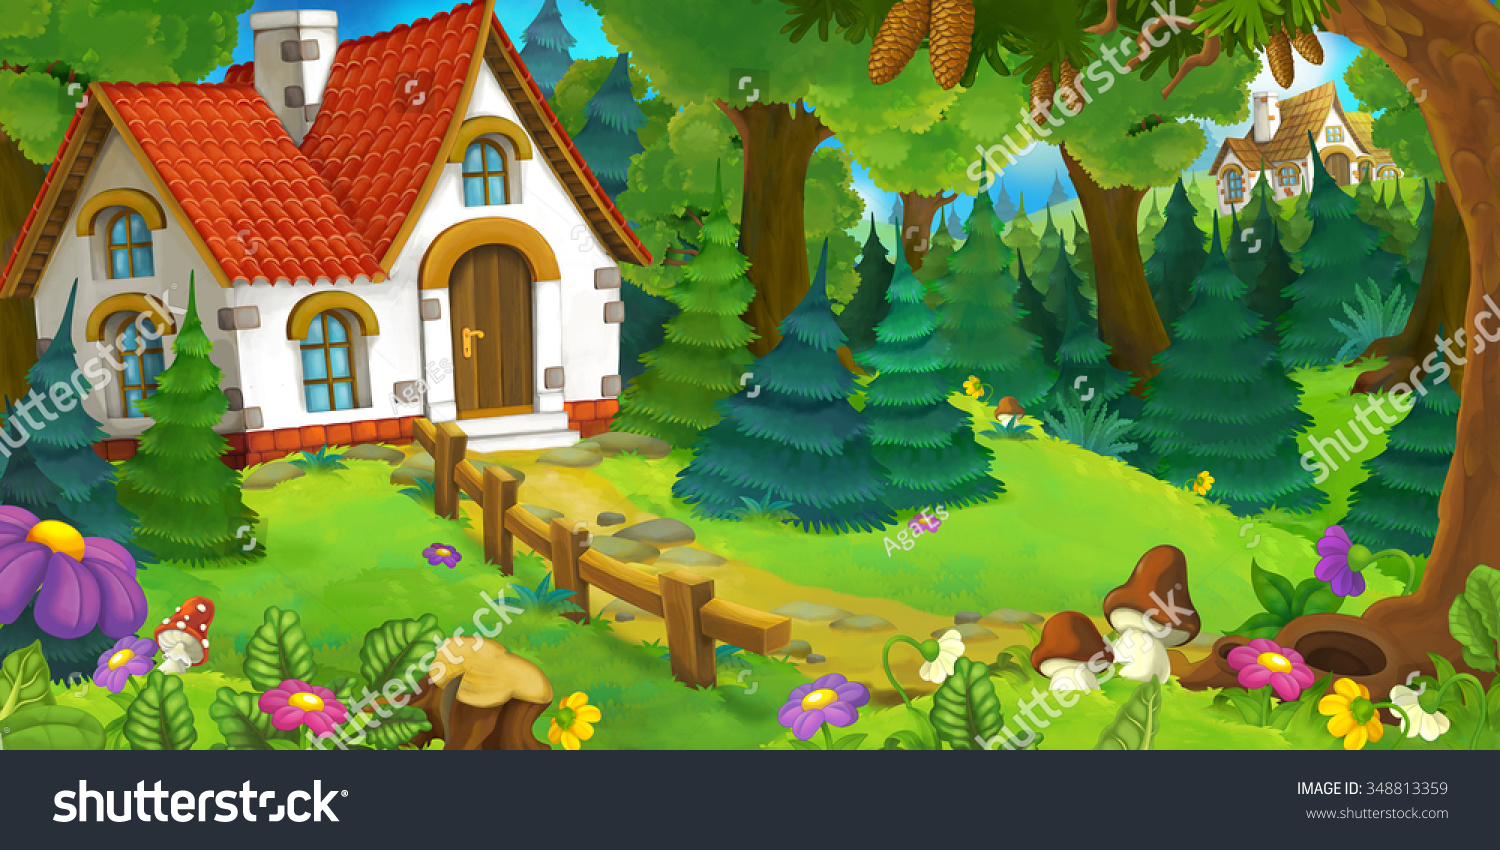 Cartoon forest house background